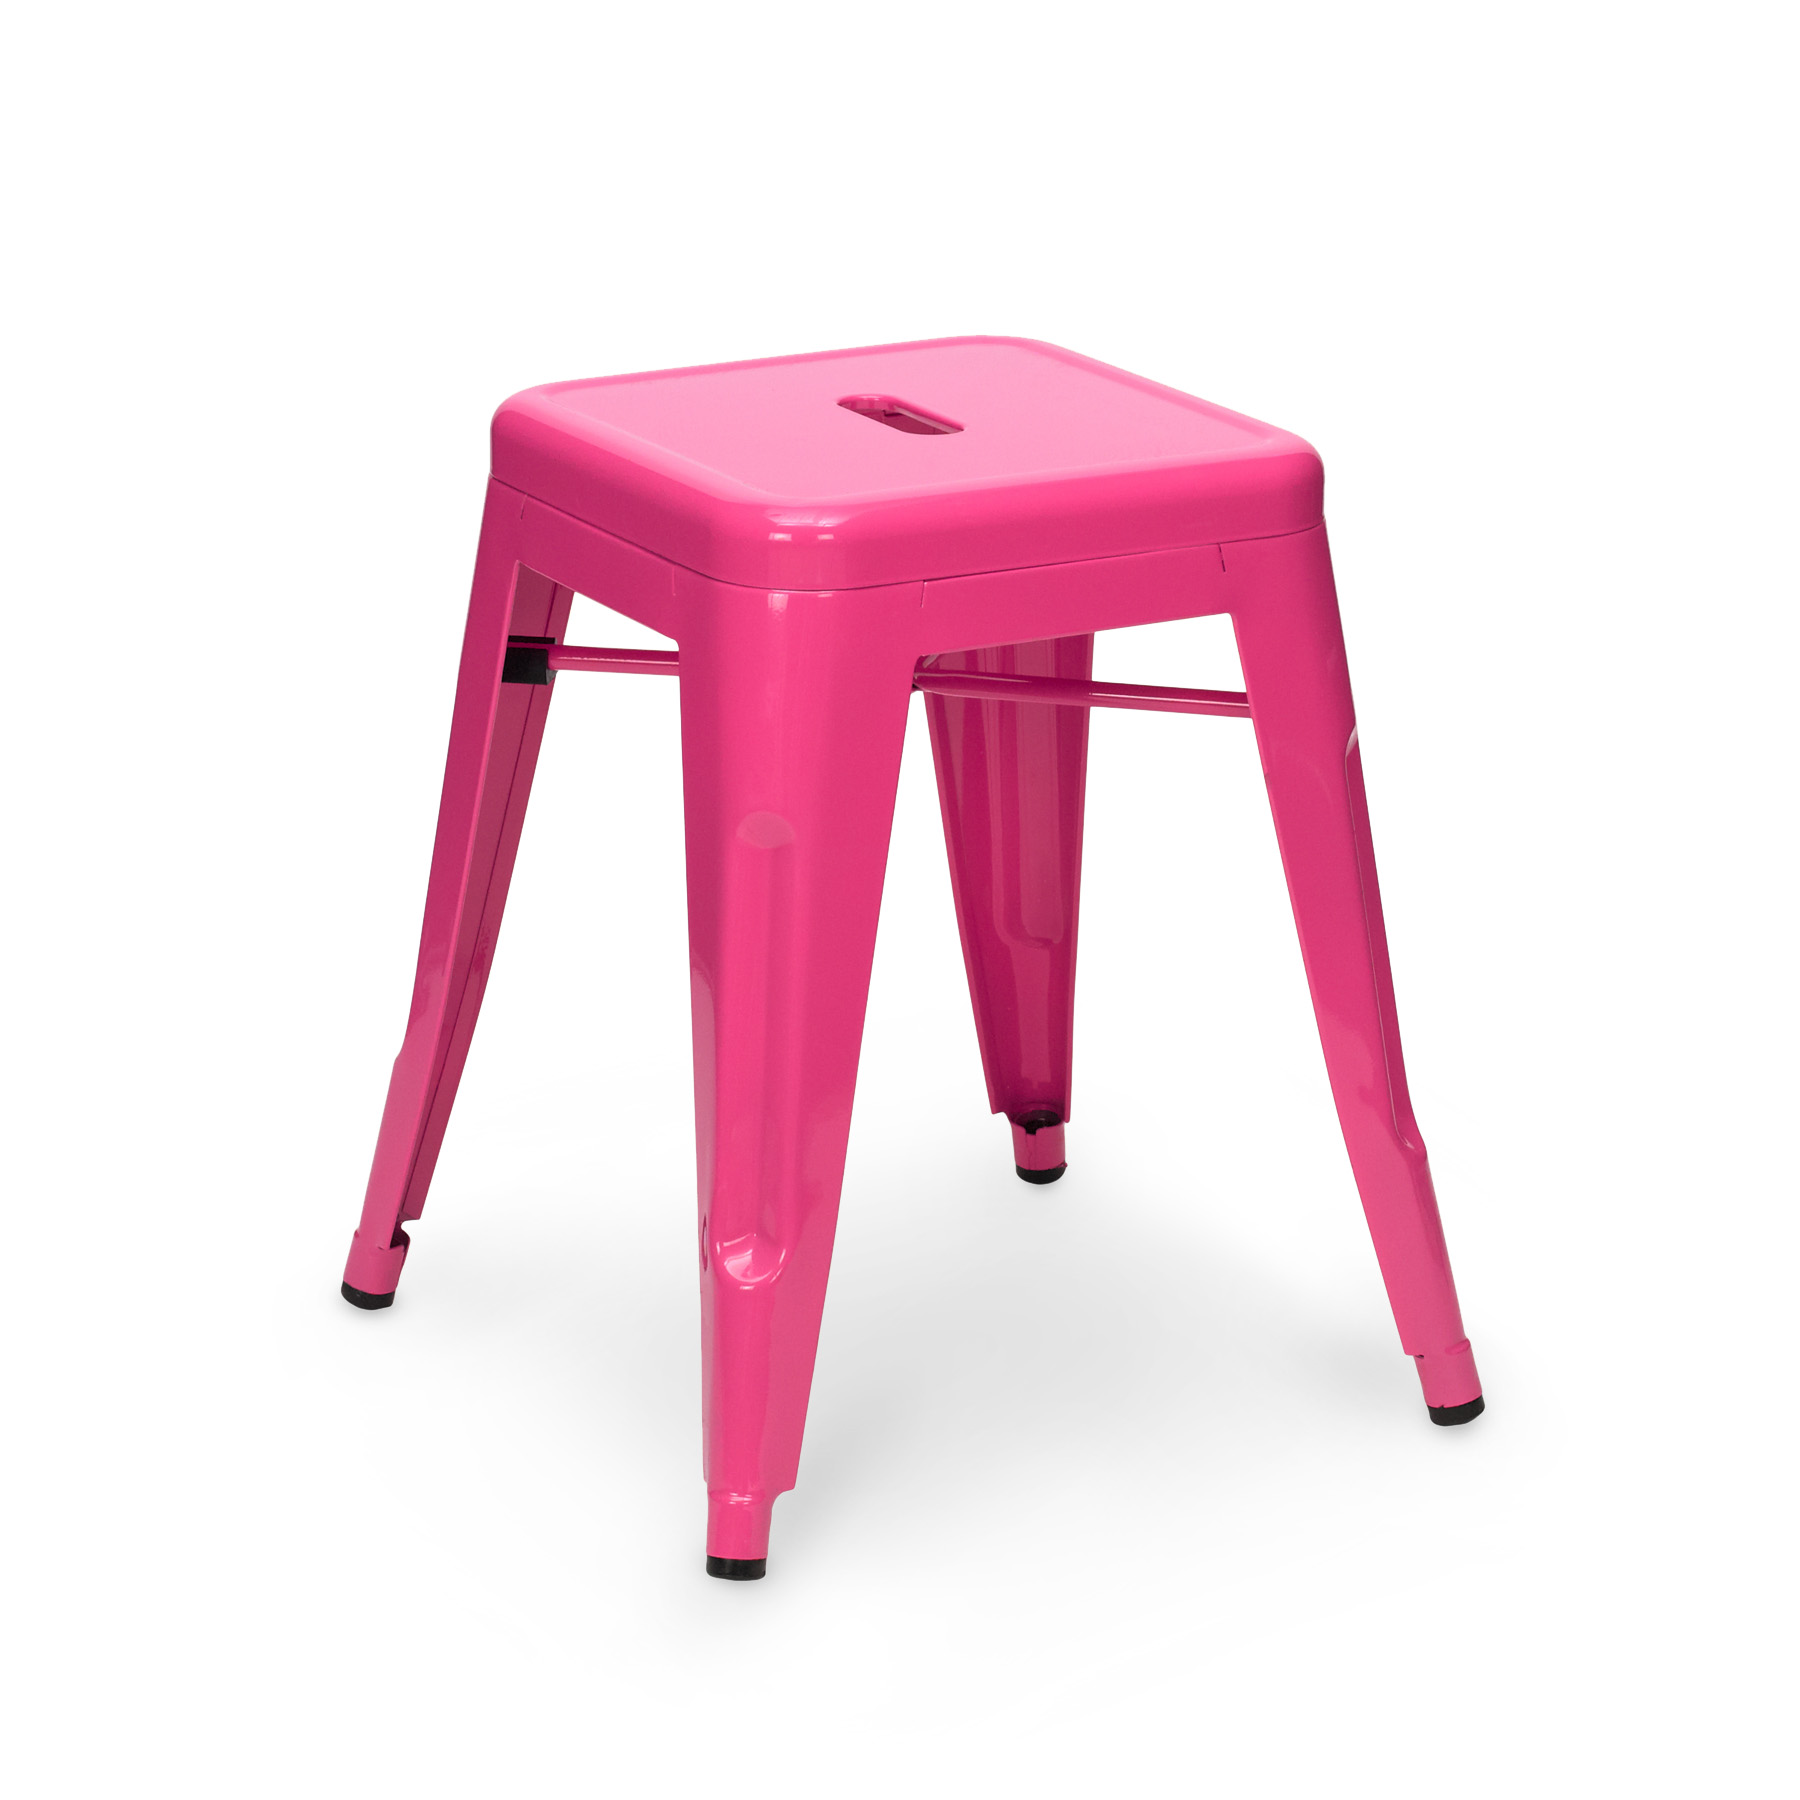 pink stool chair gaming office depot tolix 45cm